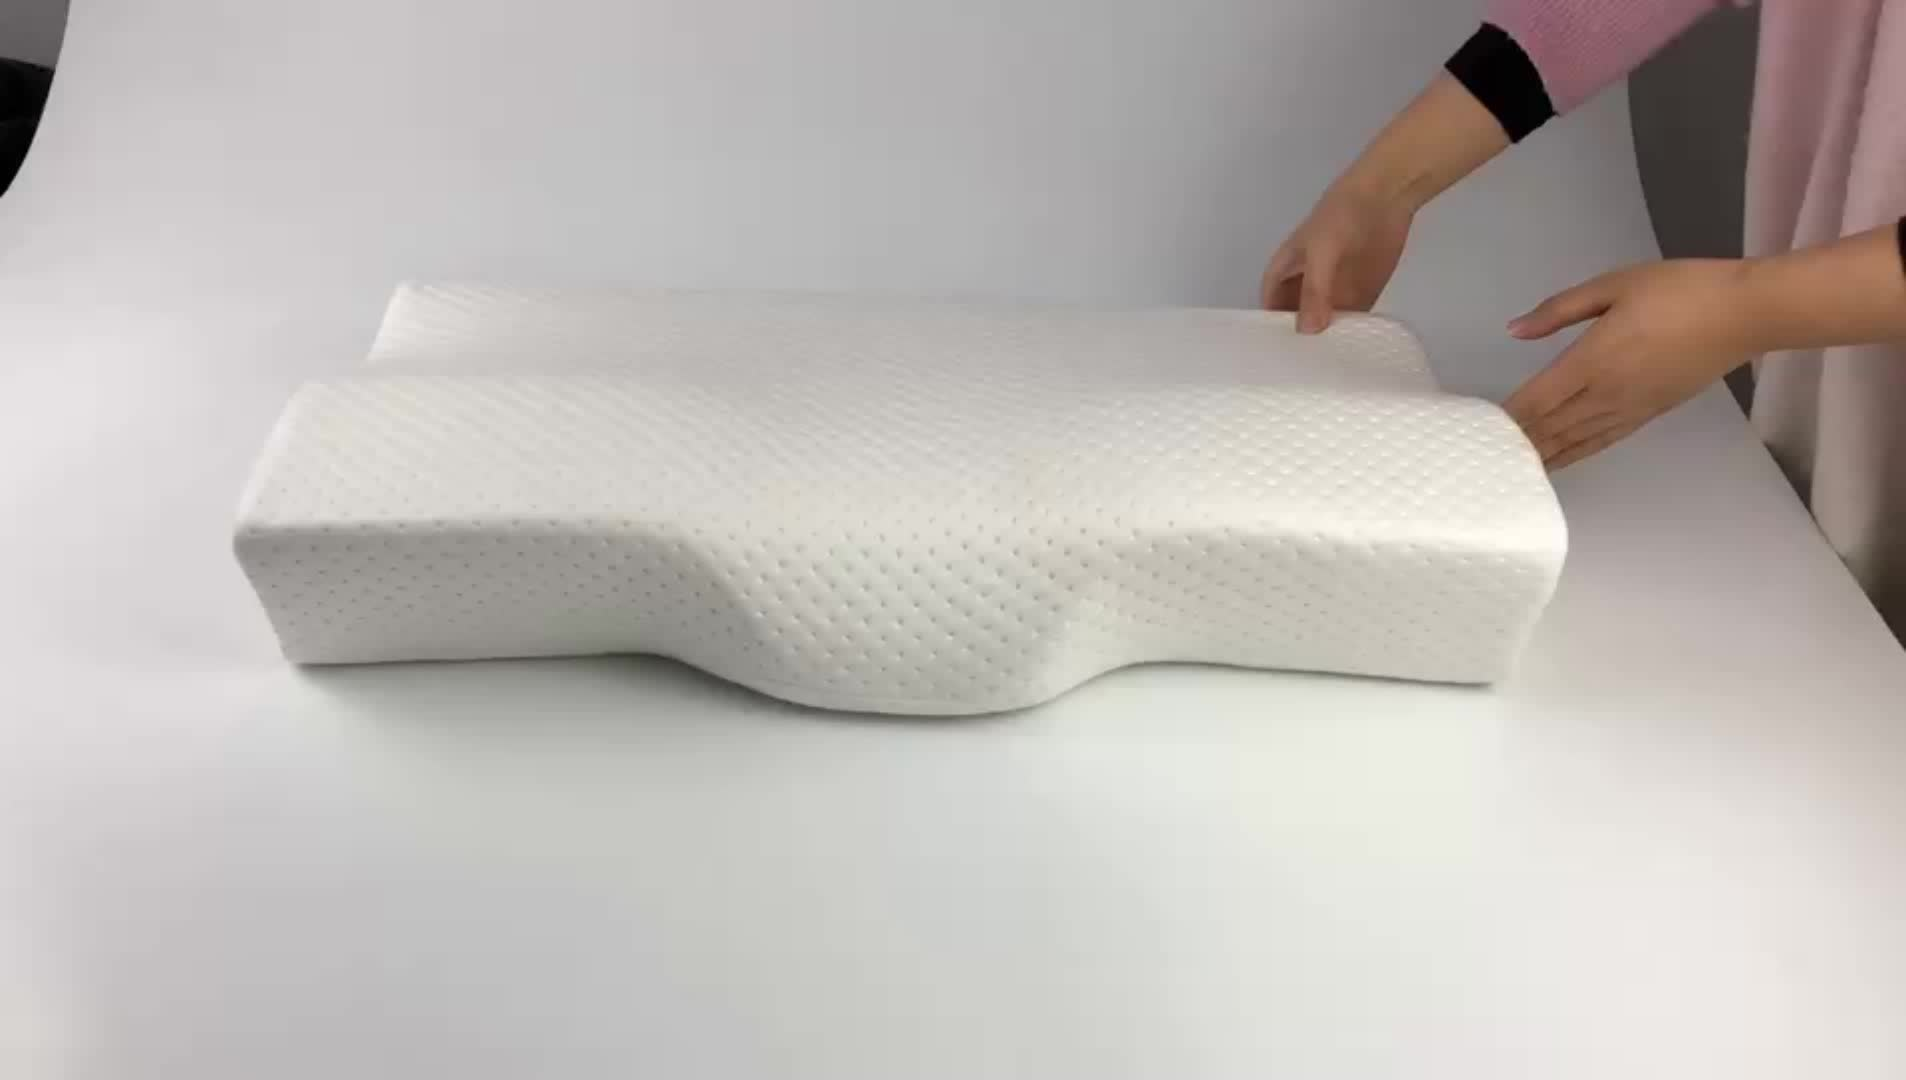 Memory Foam Pillow - Orthopedic Contour Pillow for Neck Pain, Side Sleepers And Back Sleepers